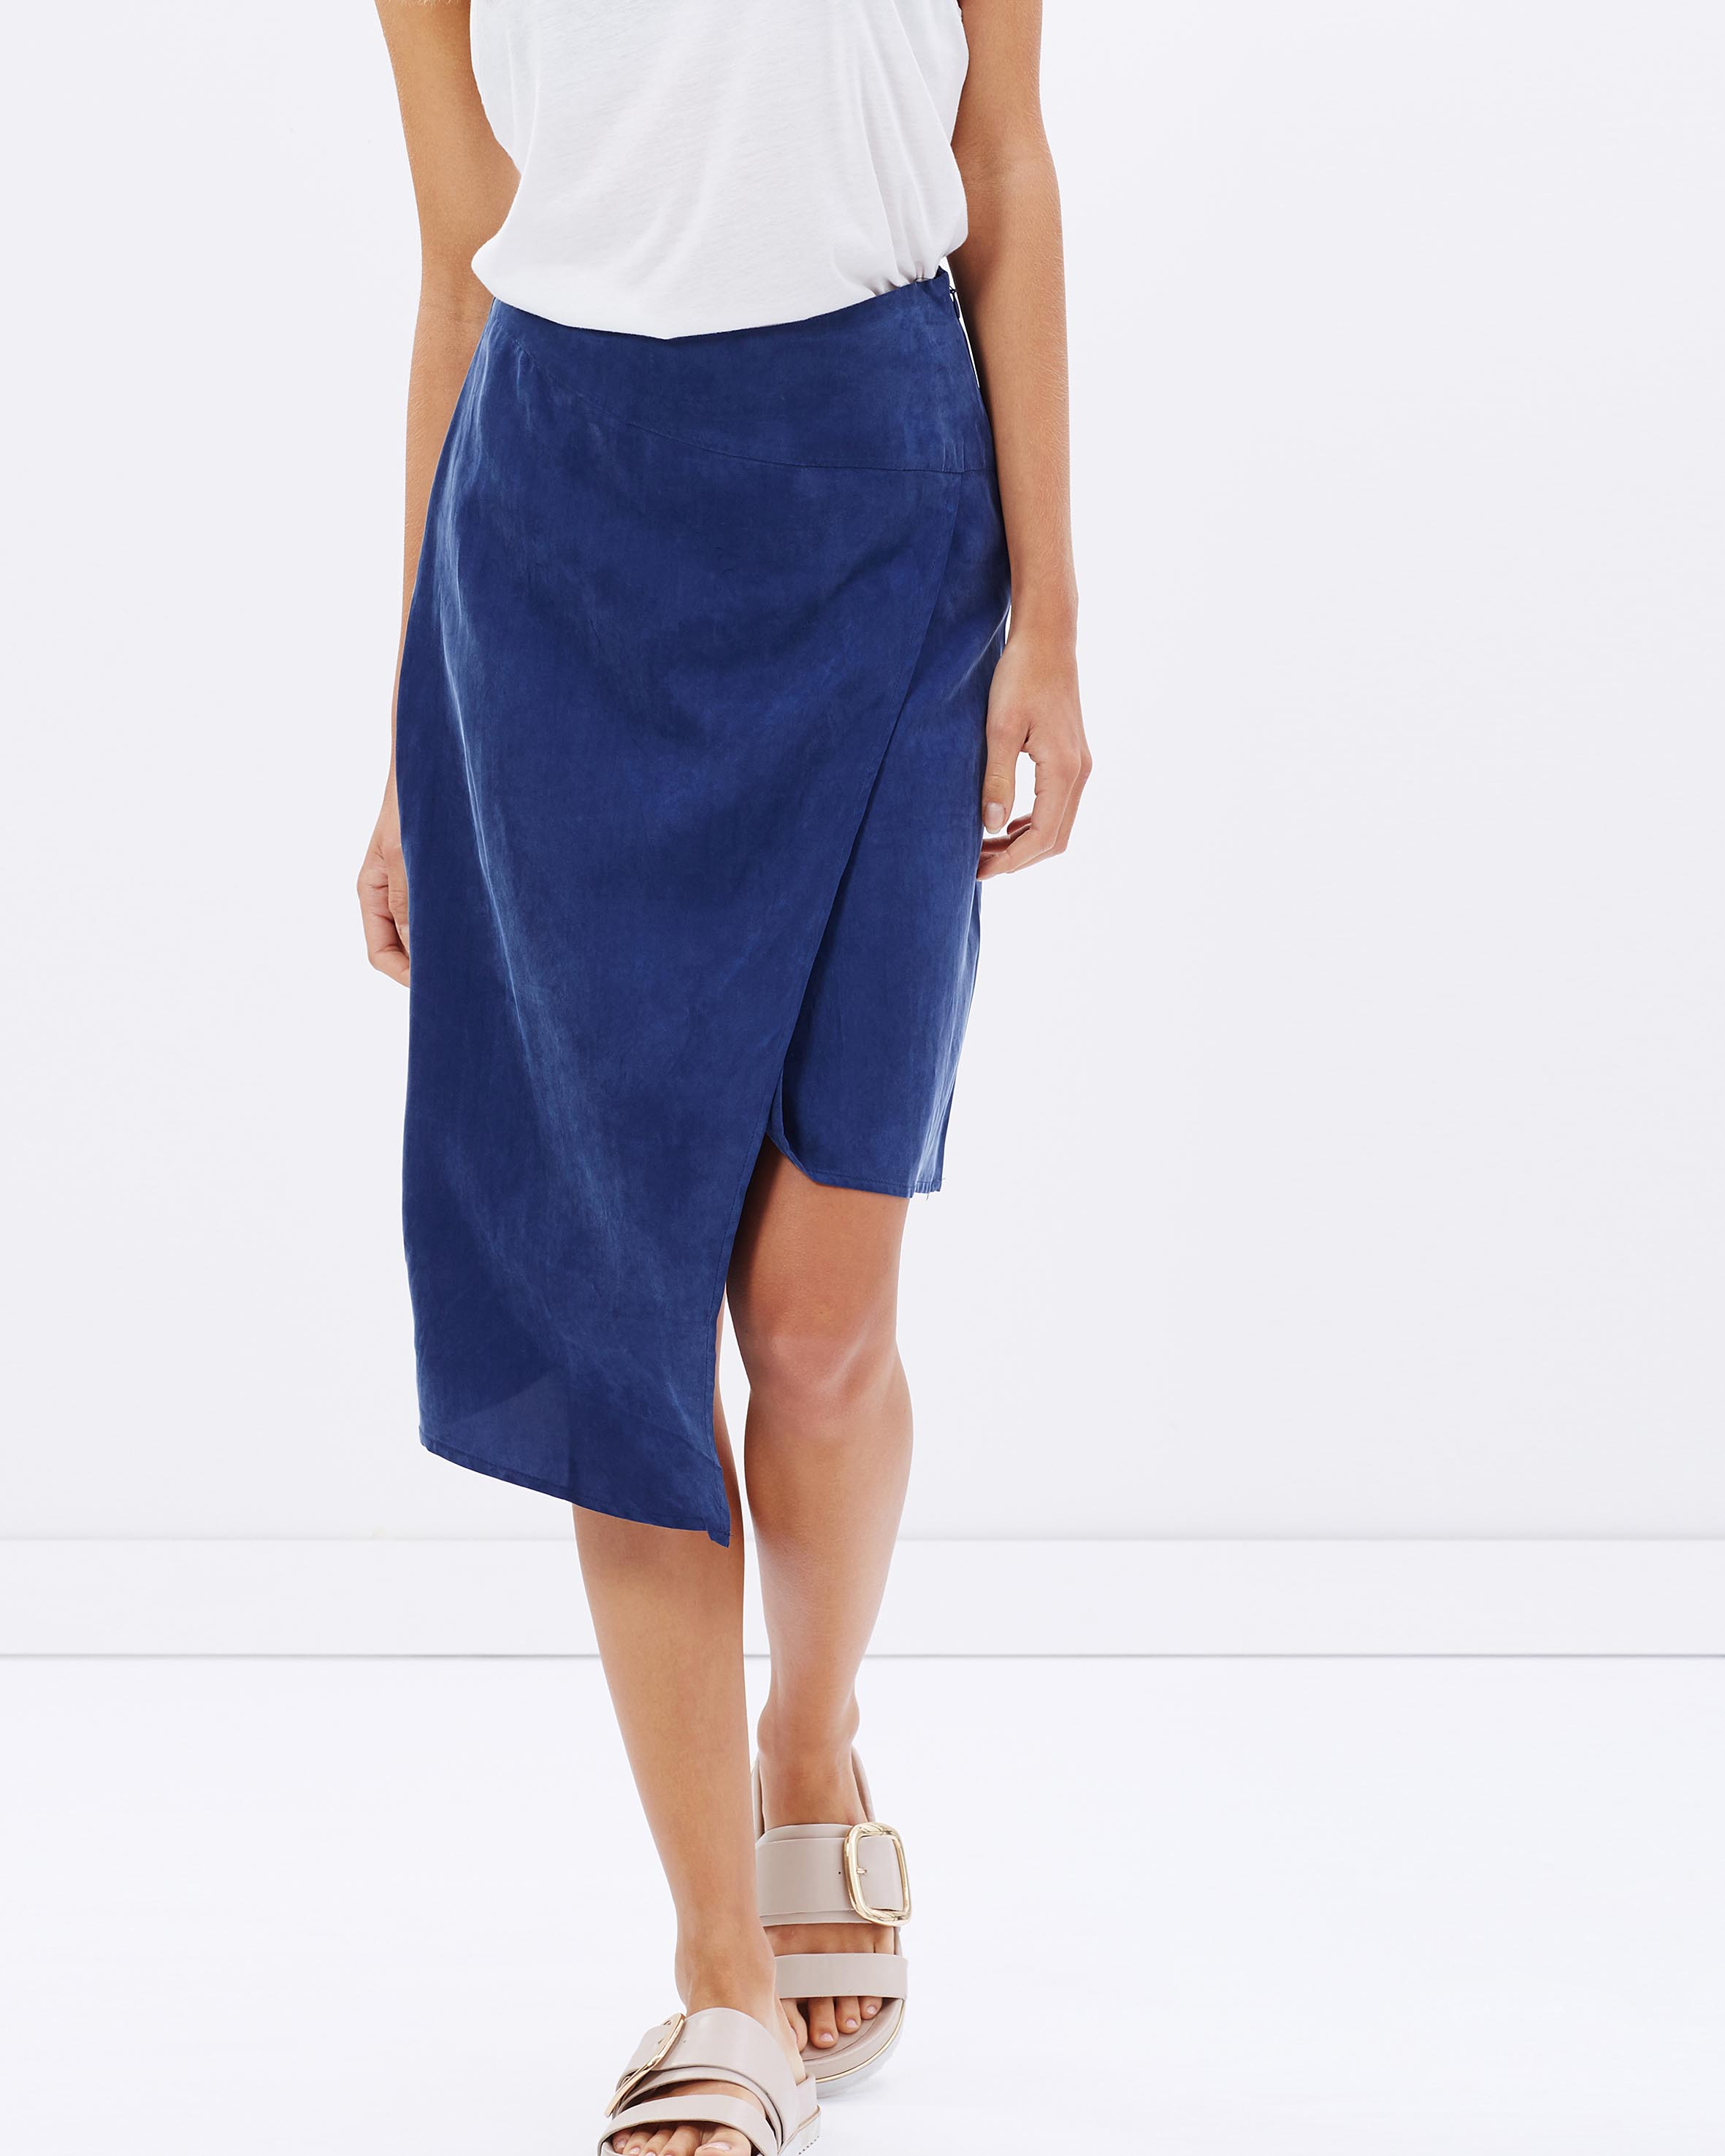 Staple the Label cutting edge skirt $89.95